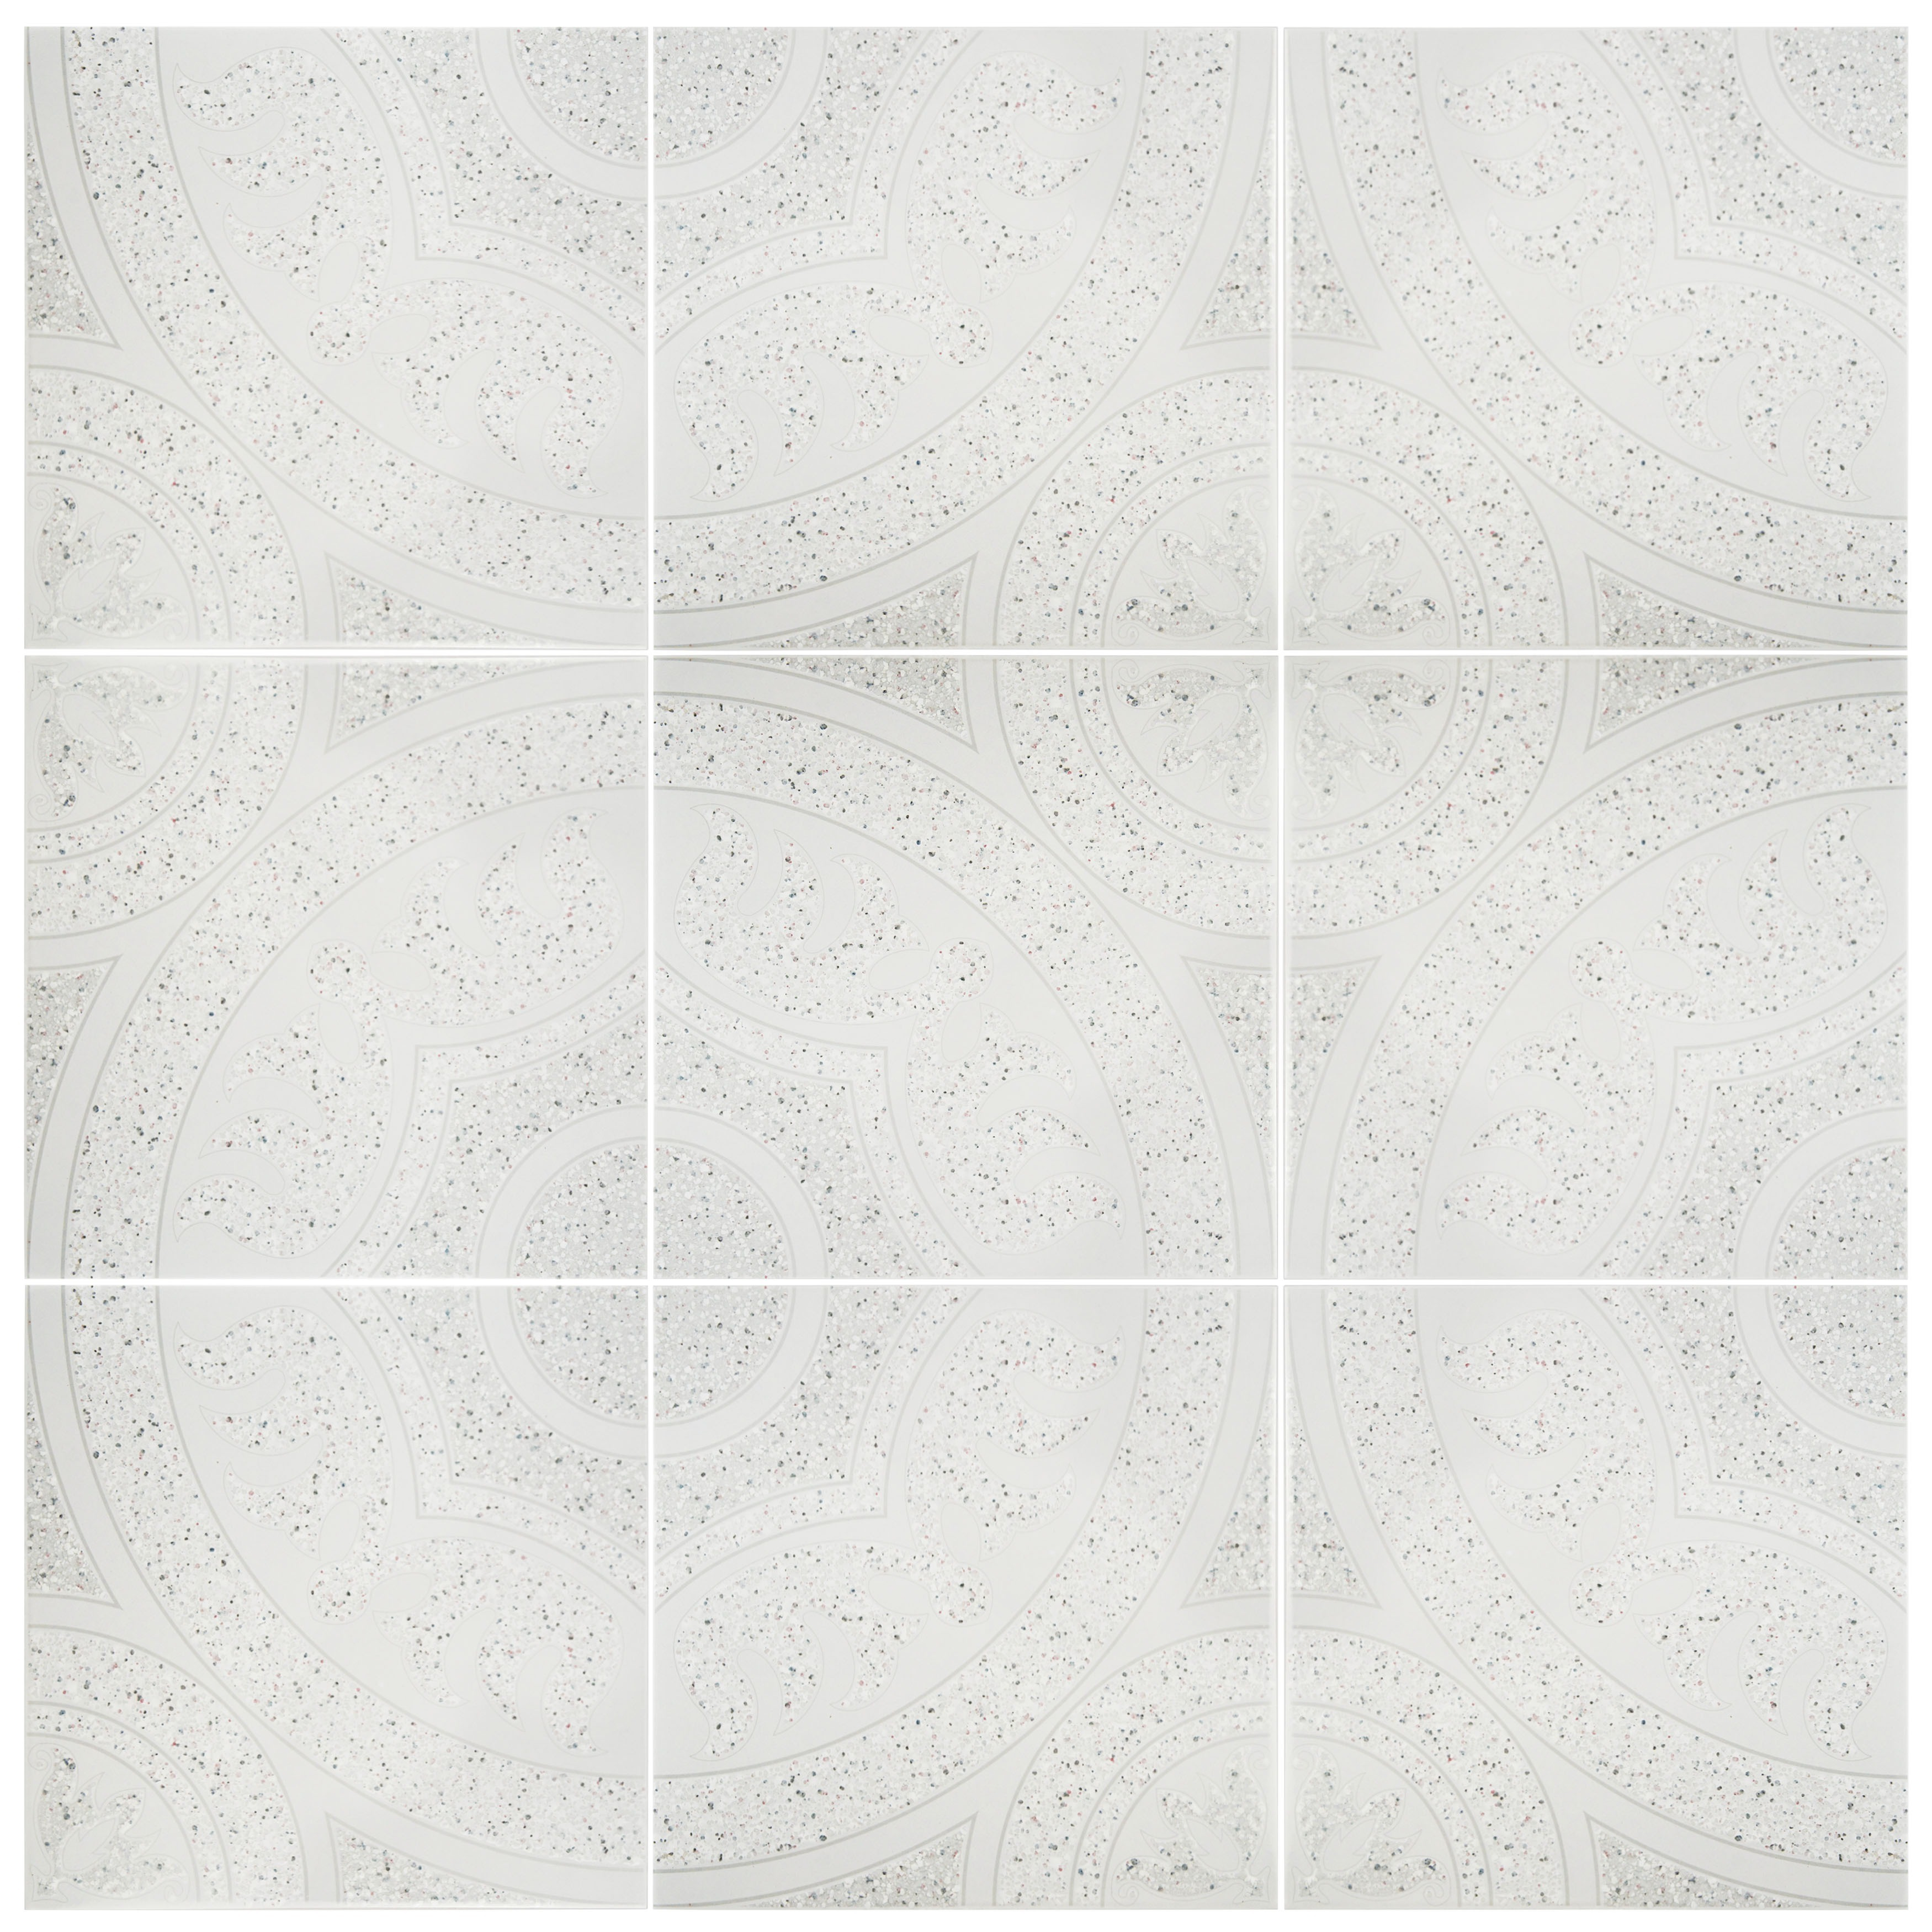 Somertile 125x125 inch casablanca gris ceramic wall tile case somertile 125x125 inch casablanca gris ceramic wall tile case of 10 free shipping today overstock 17604579 dailygadgetfo Gallery